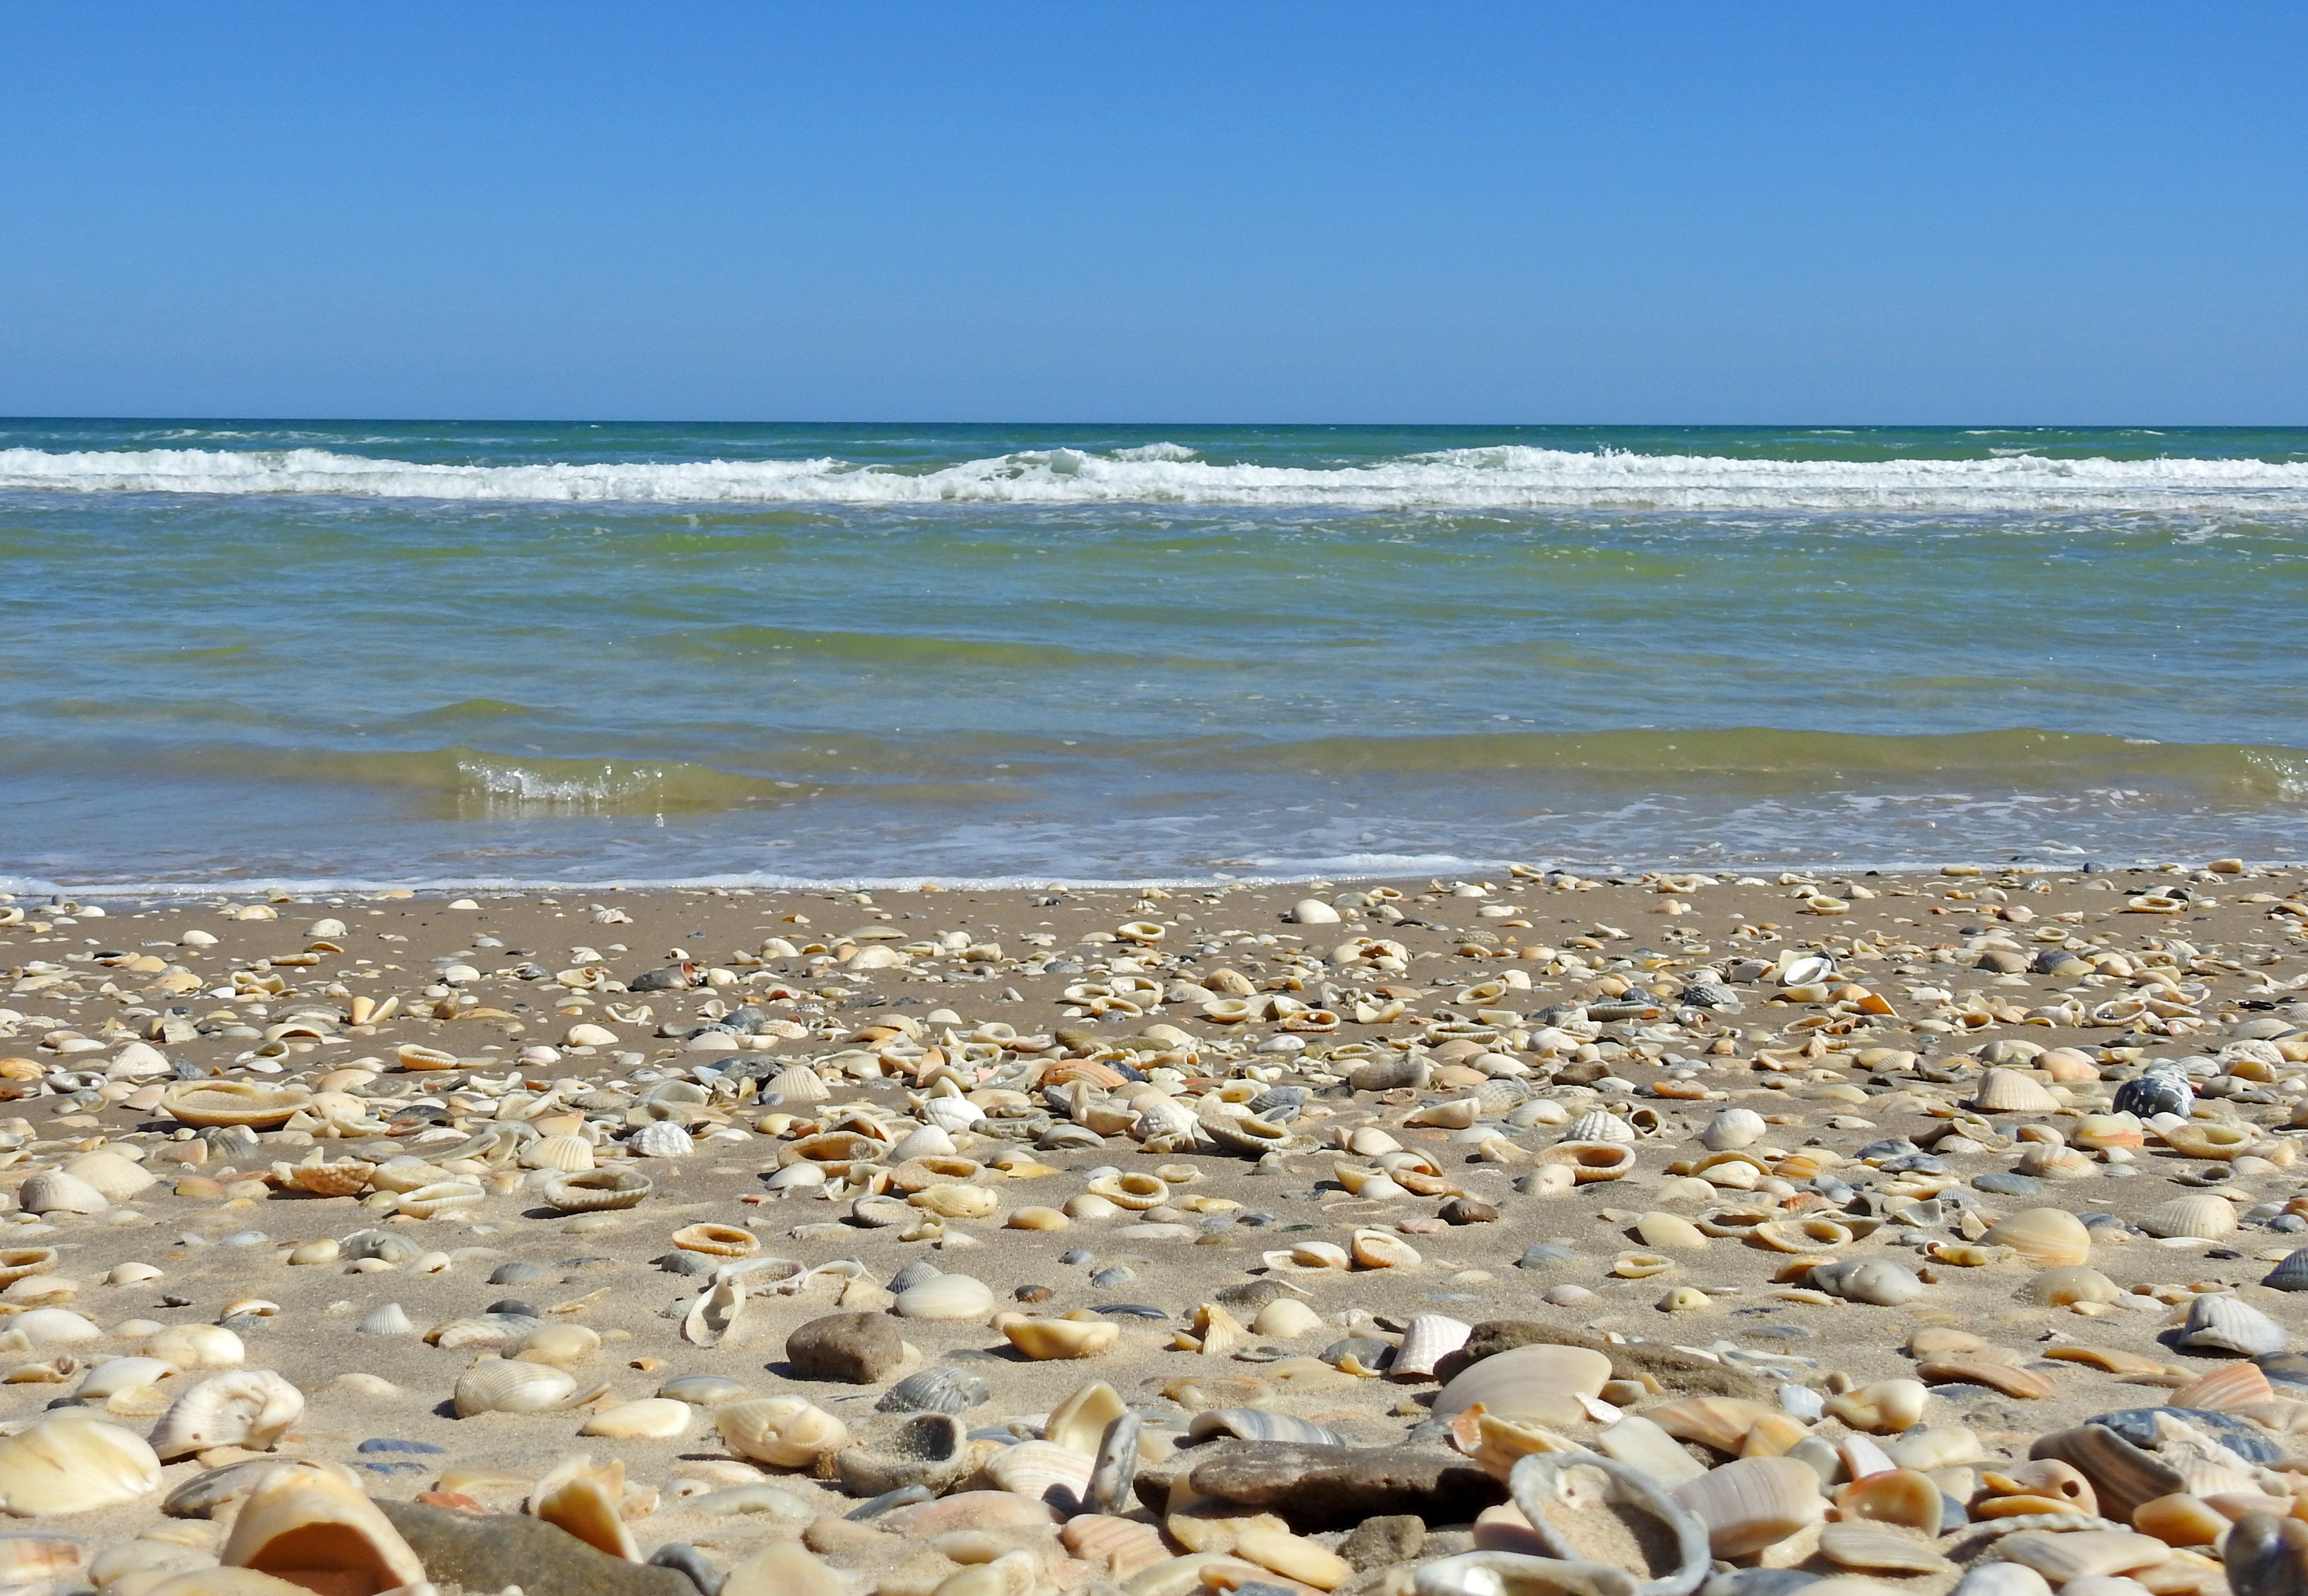 Shell Beach South Padre Island National Seas You Must Have 4 Wheel Drive To Reach This Remote Section Of